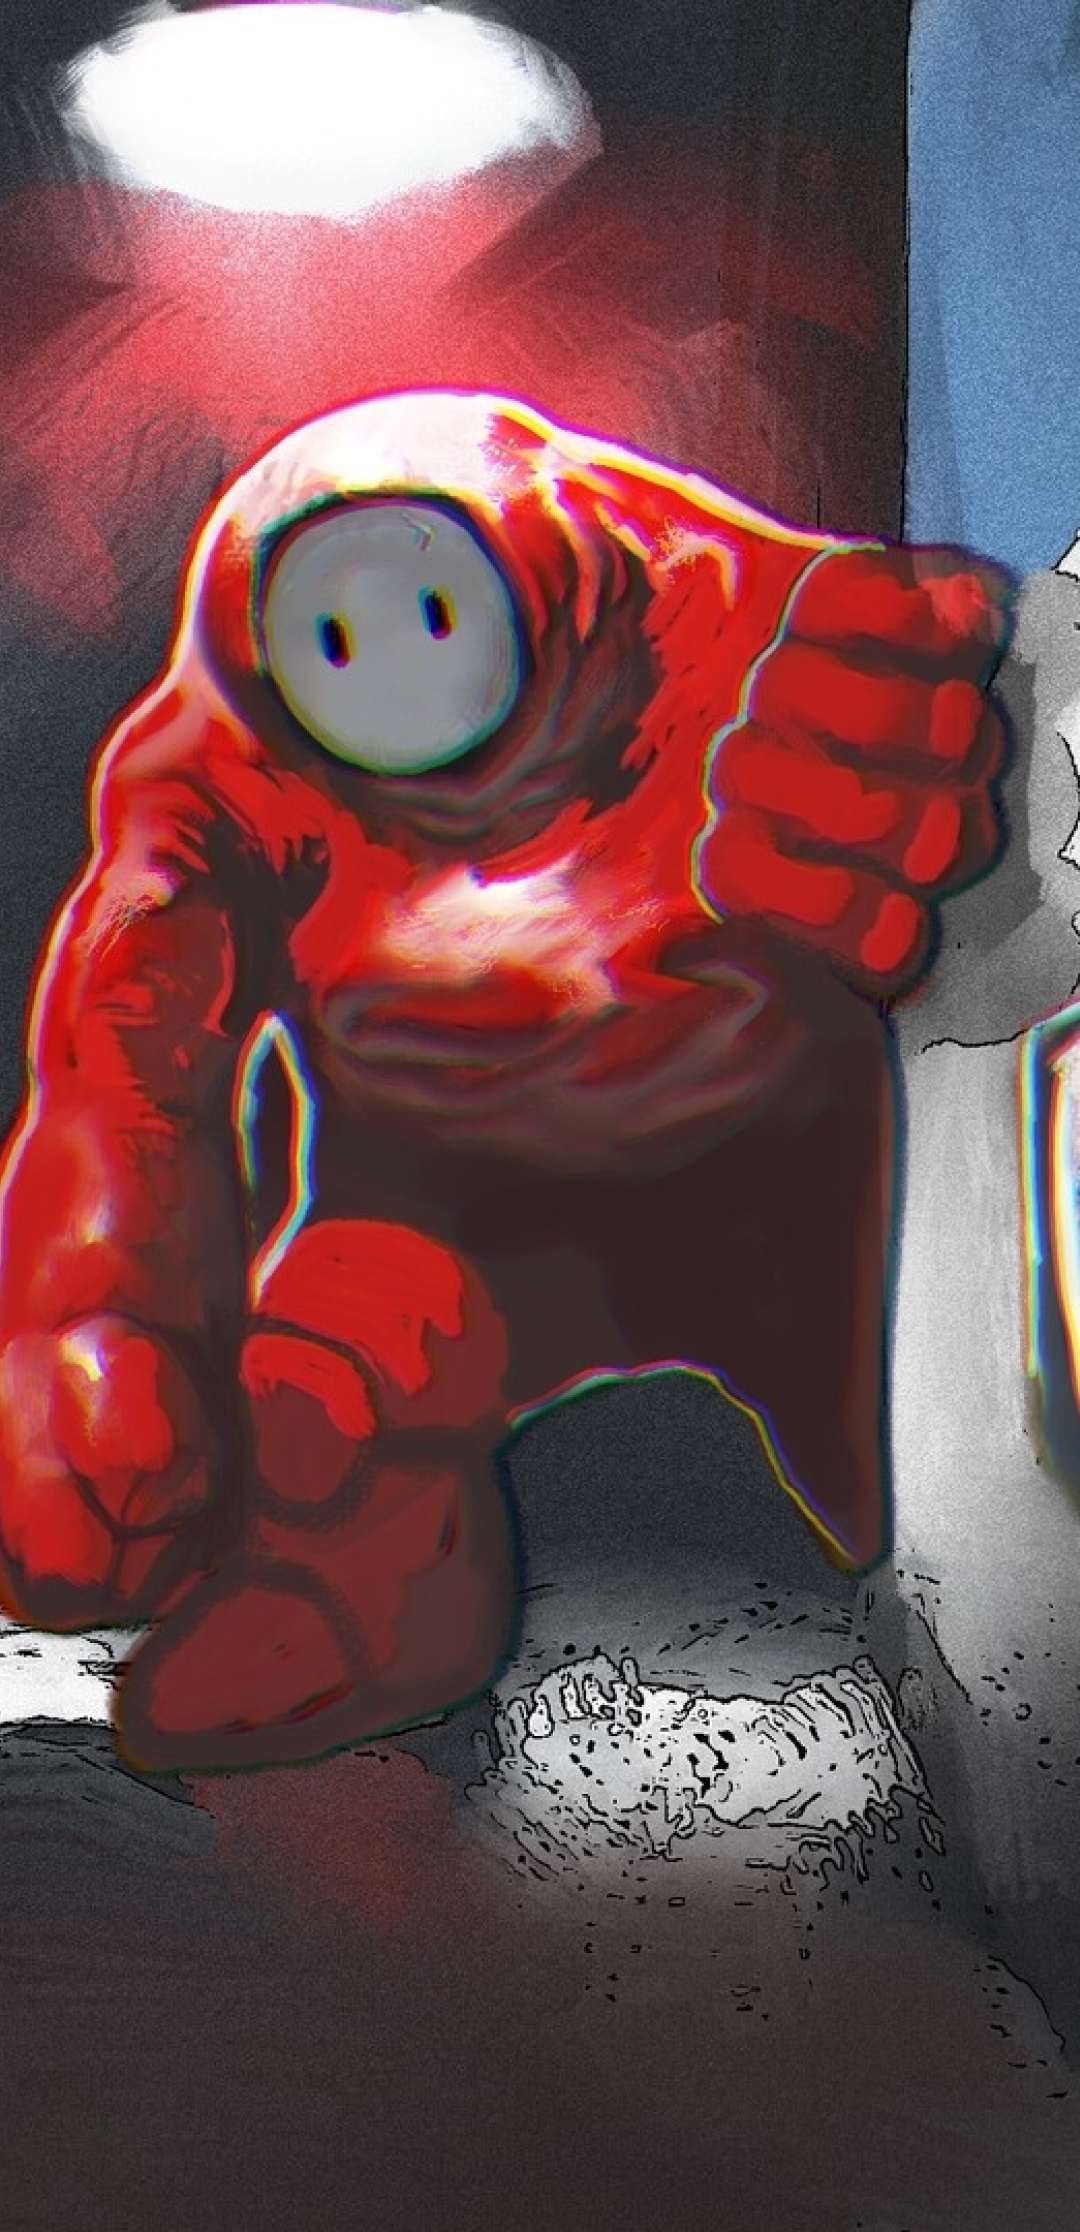 1080x2232 Red vs Blue Crewmate Among Us 1080x2232 ...